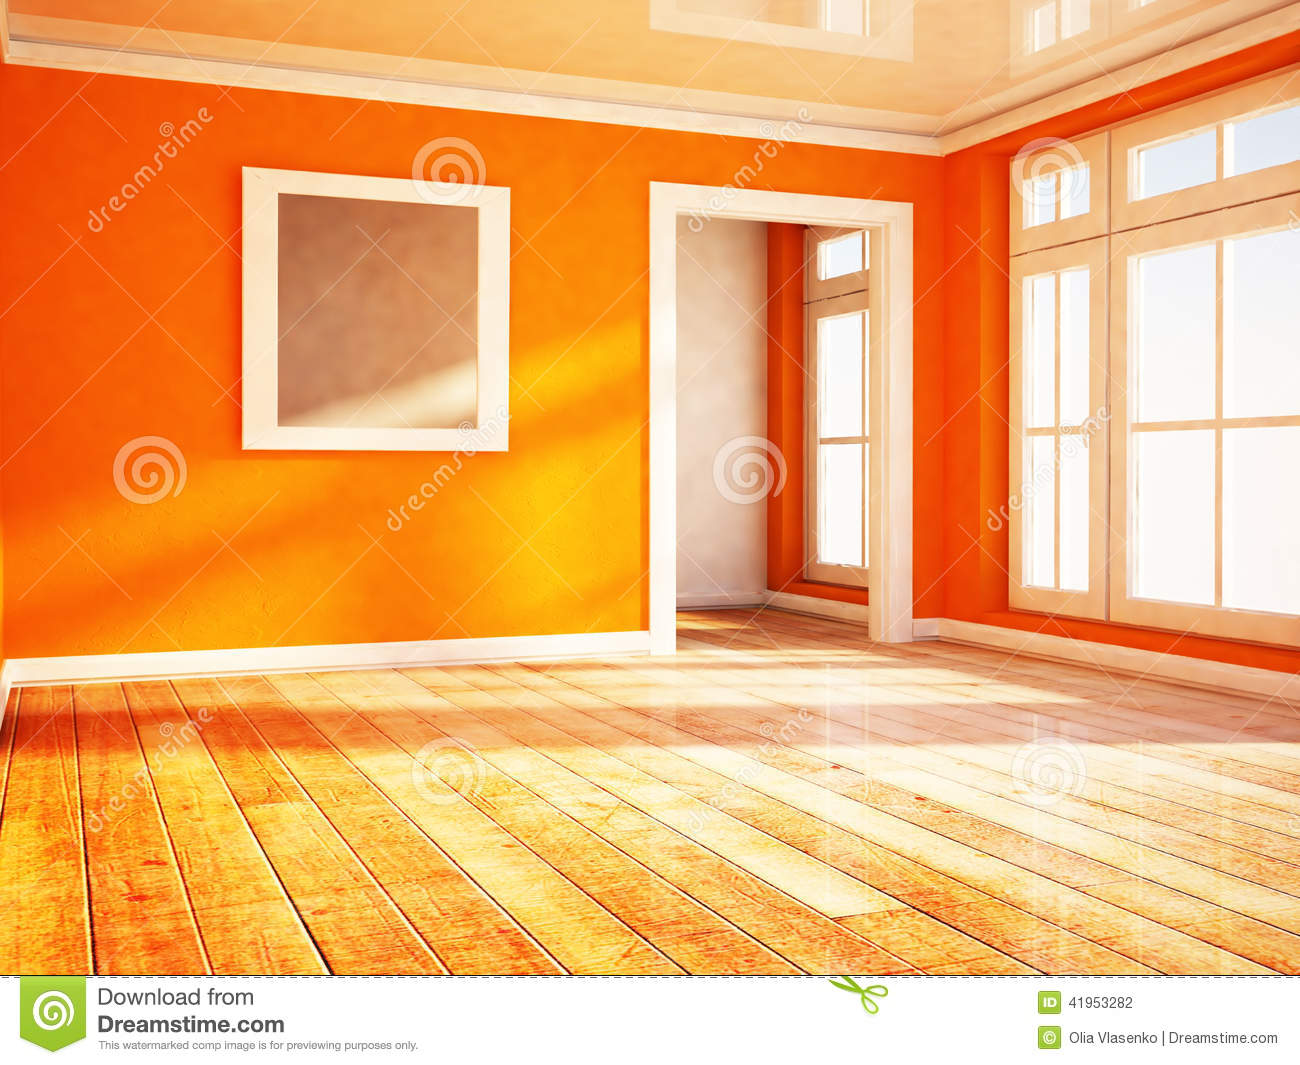 Bright room with the window